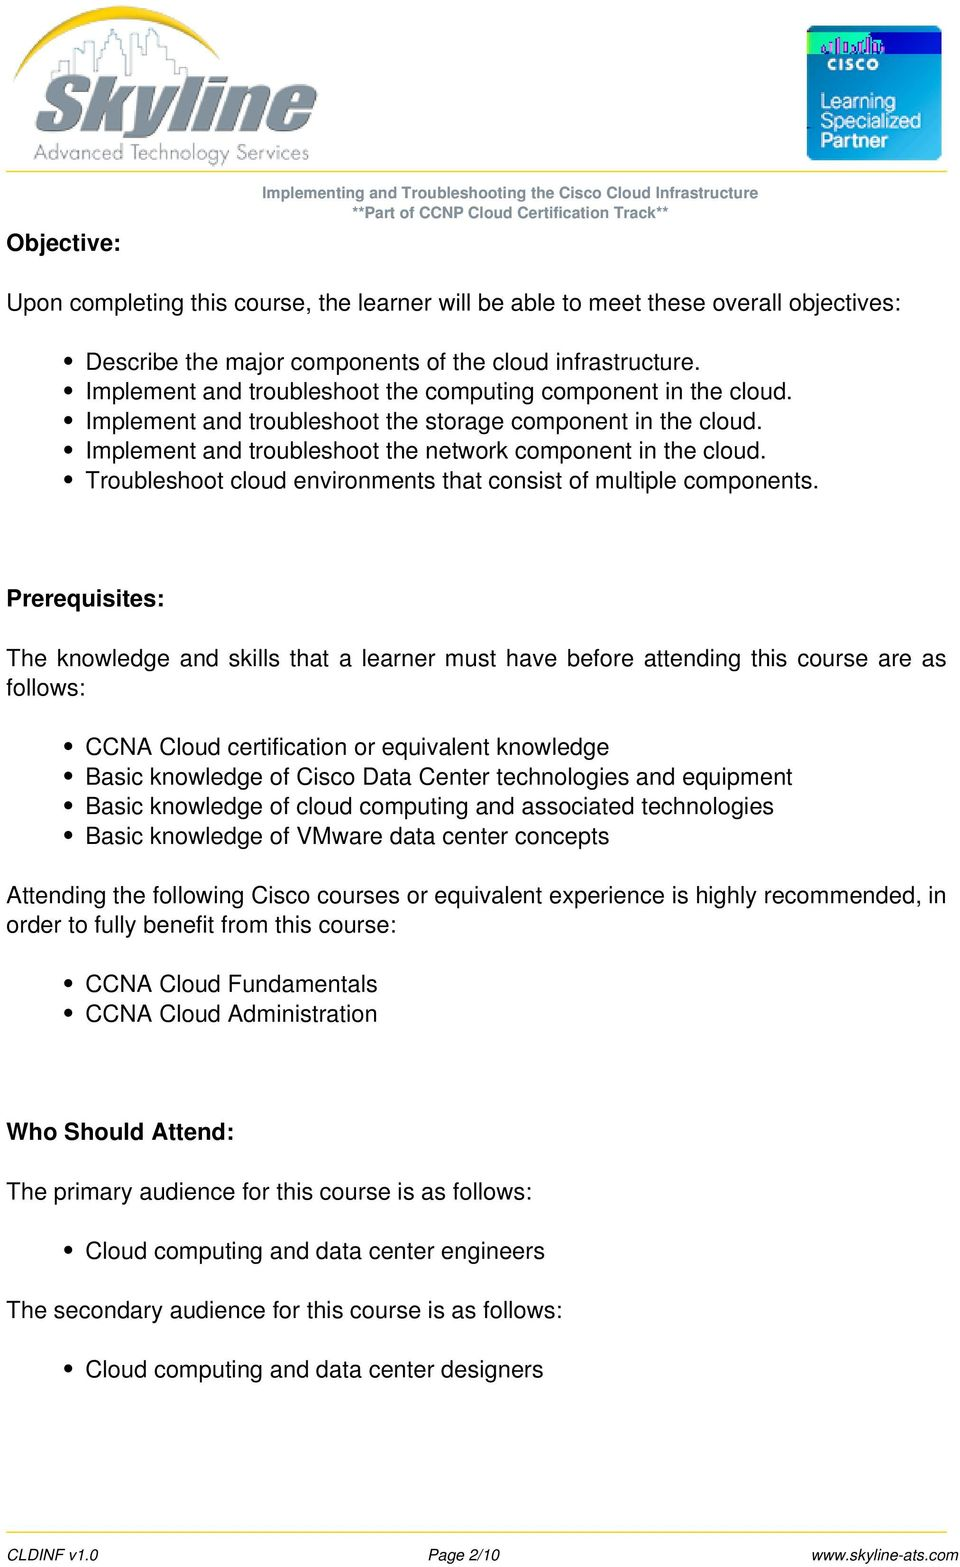 Implement and troubleshoot the network component in the cloud. Troubleshoot cloud environments that consist of multiple components.